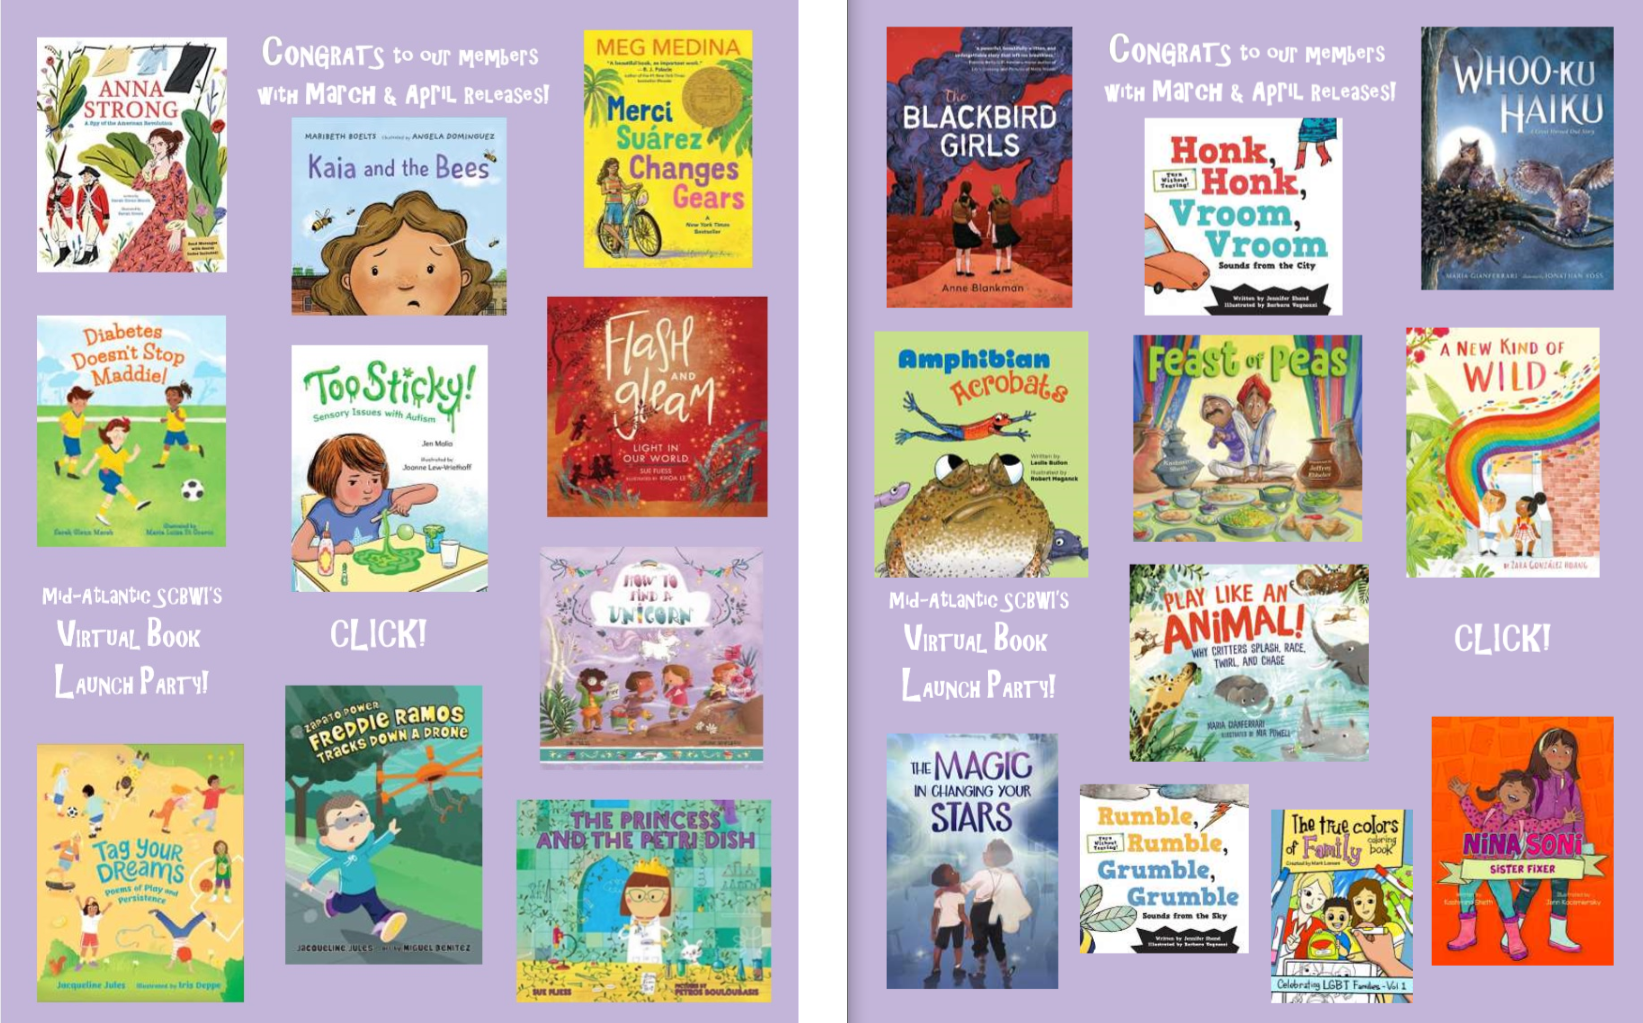 VIRTUAL BOOK LAUNCH PARTY! Celebrating March & April releases of Mid-Atlantic SCBWI members  Meg Medina, author Candlewick Press, April 2020 2019 Newbery award winner now available in paperback! Everything feels different in the sixth grade for Merci Suárez–-and not just at school where queen bee Edna Santos is driving her crazy about Merci's school-assigned Sunshine Buddy, Michael Clark. Her grandfather, Lolo, has been acting strangely, too, but no one in her family will tell her what's going on. Meet the Suárez family and the students of Seaward Pines Academy for a story that gets at the confusion that defines middle school and the steadfast connection of family. Enter to win some swag for MERCI SÚAREZ CHANGES GEARS and RICK by Alex Gino HERE! Purchase your paperback edition HERE.   Sarah Glenn Marsh, author Sarah Green, illustrator Abrams, March 2020 The thrilling true story of one brave woman who, with bravery and wit and some strategically placed laundry, helped save the American Revolution. The book includes a spy code so kids can get involved in the action.